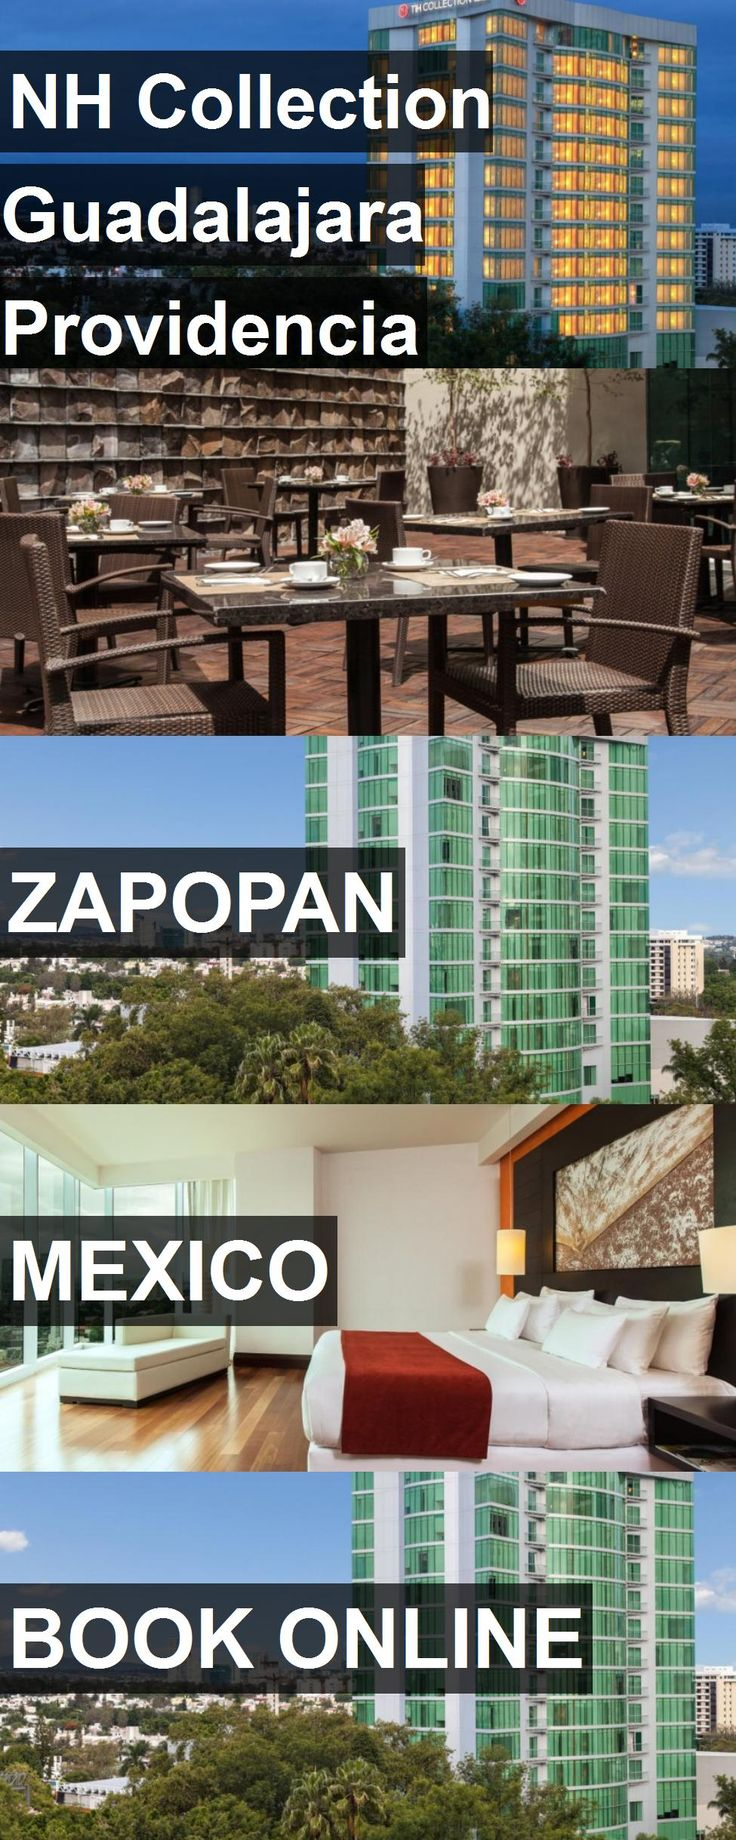 Hotel NH Collection Guadalajara Providencia in Zapopan, Mexico. For more information, photos, reviews and best prices please follow the link. #Mexico #Zapopan #NHCollectionGuadalajaraProvidencia #hotel #travel #vacation